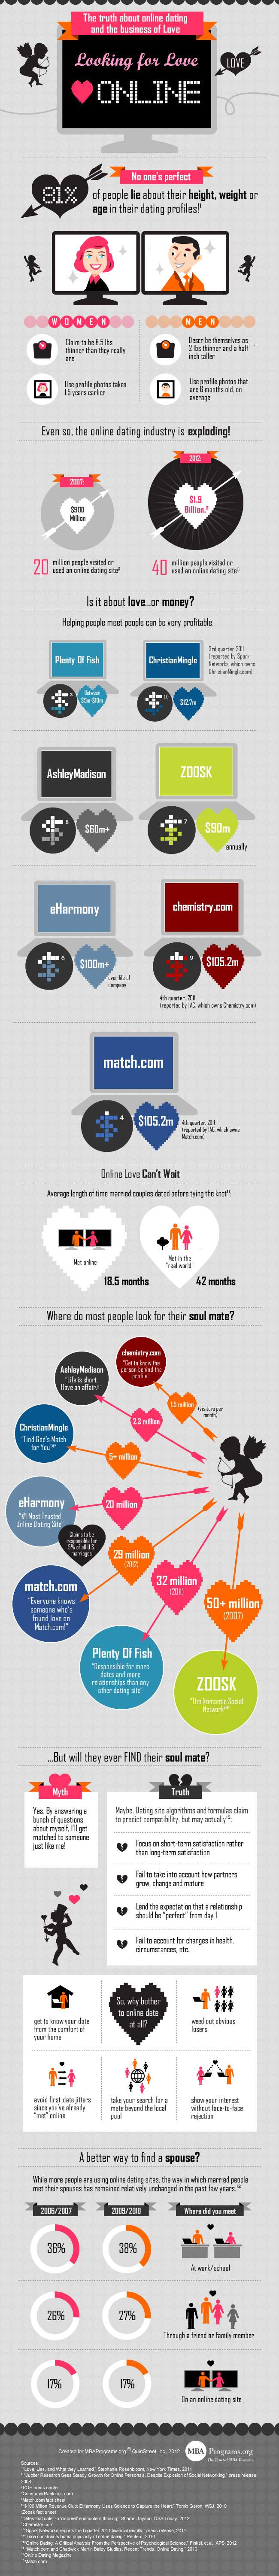 Oh No You Didn't: The Truth About Online Dating [Infographic]